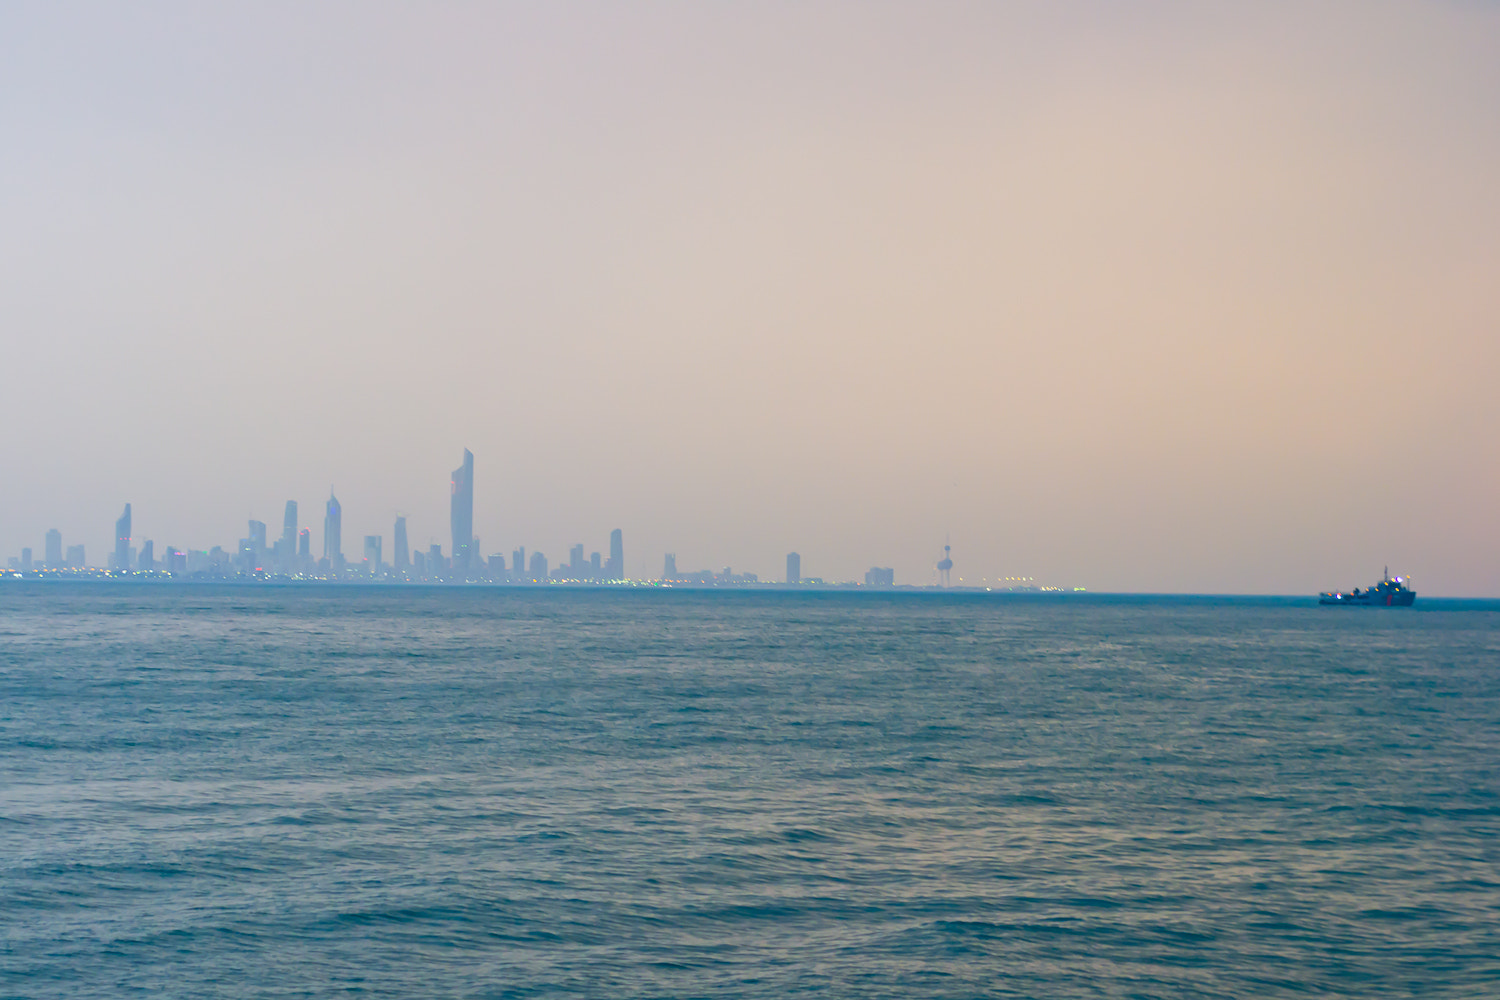 Photograph Kuwait Skyline on a Foggy Day by Yousef Abdul Husain on 500px